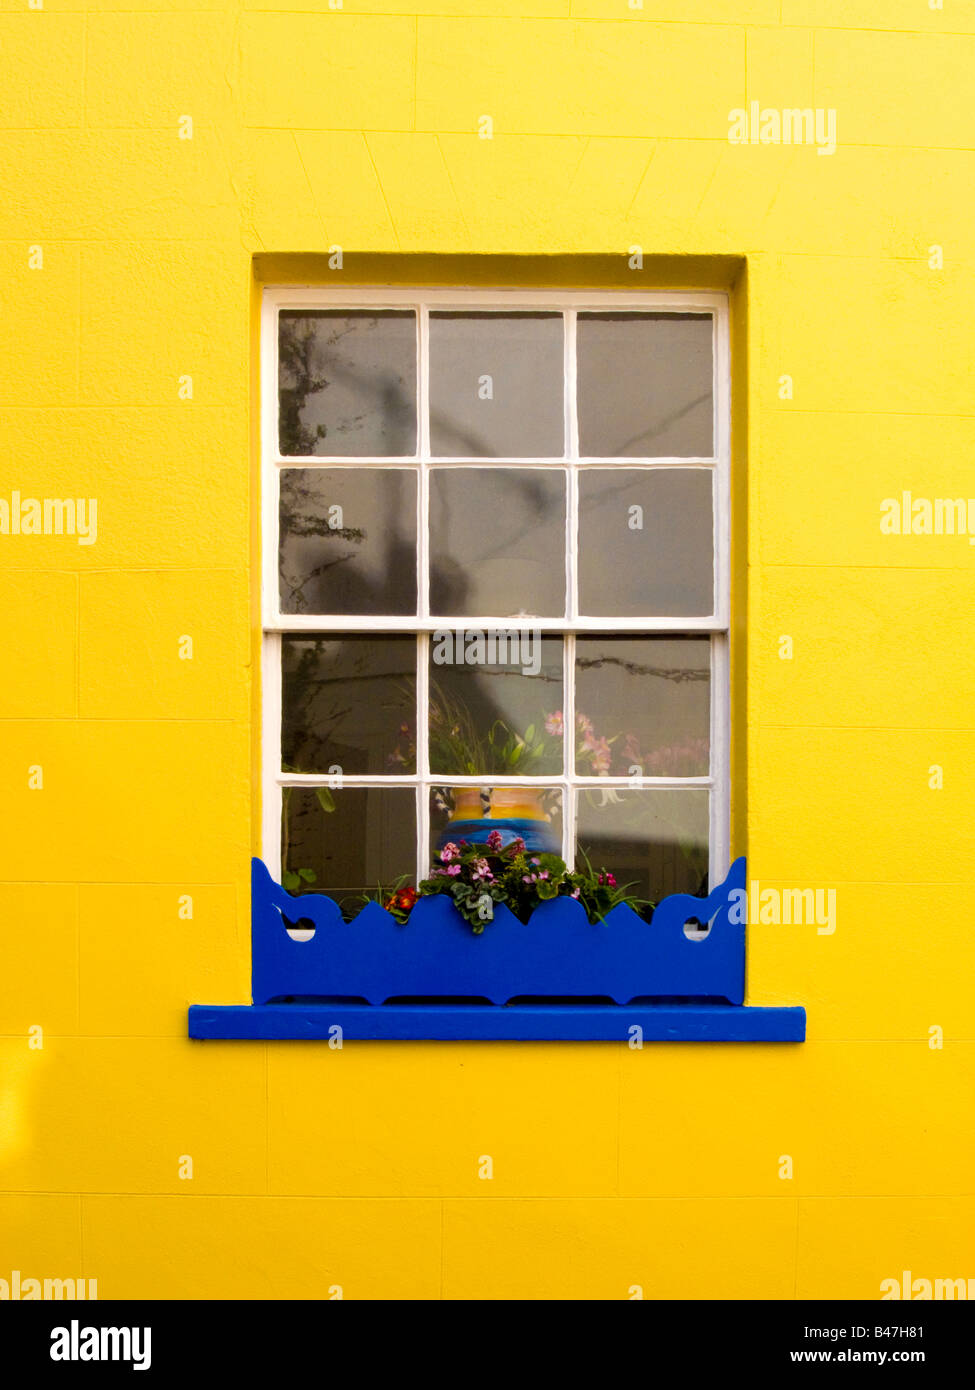 Bright blue window box beneath a window in a bright yellow wall - Stock Image